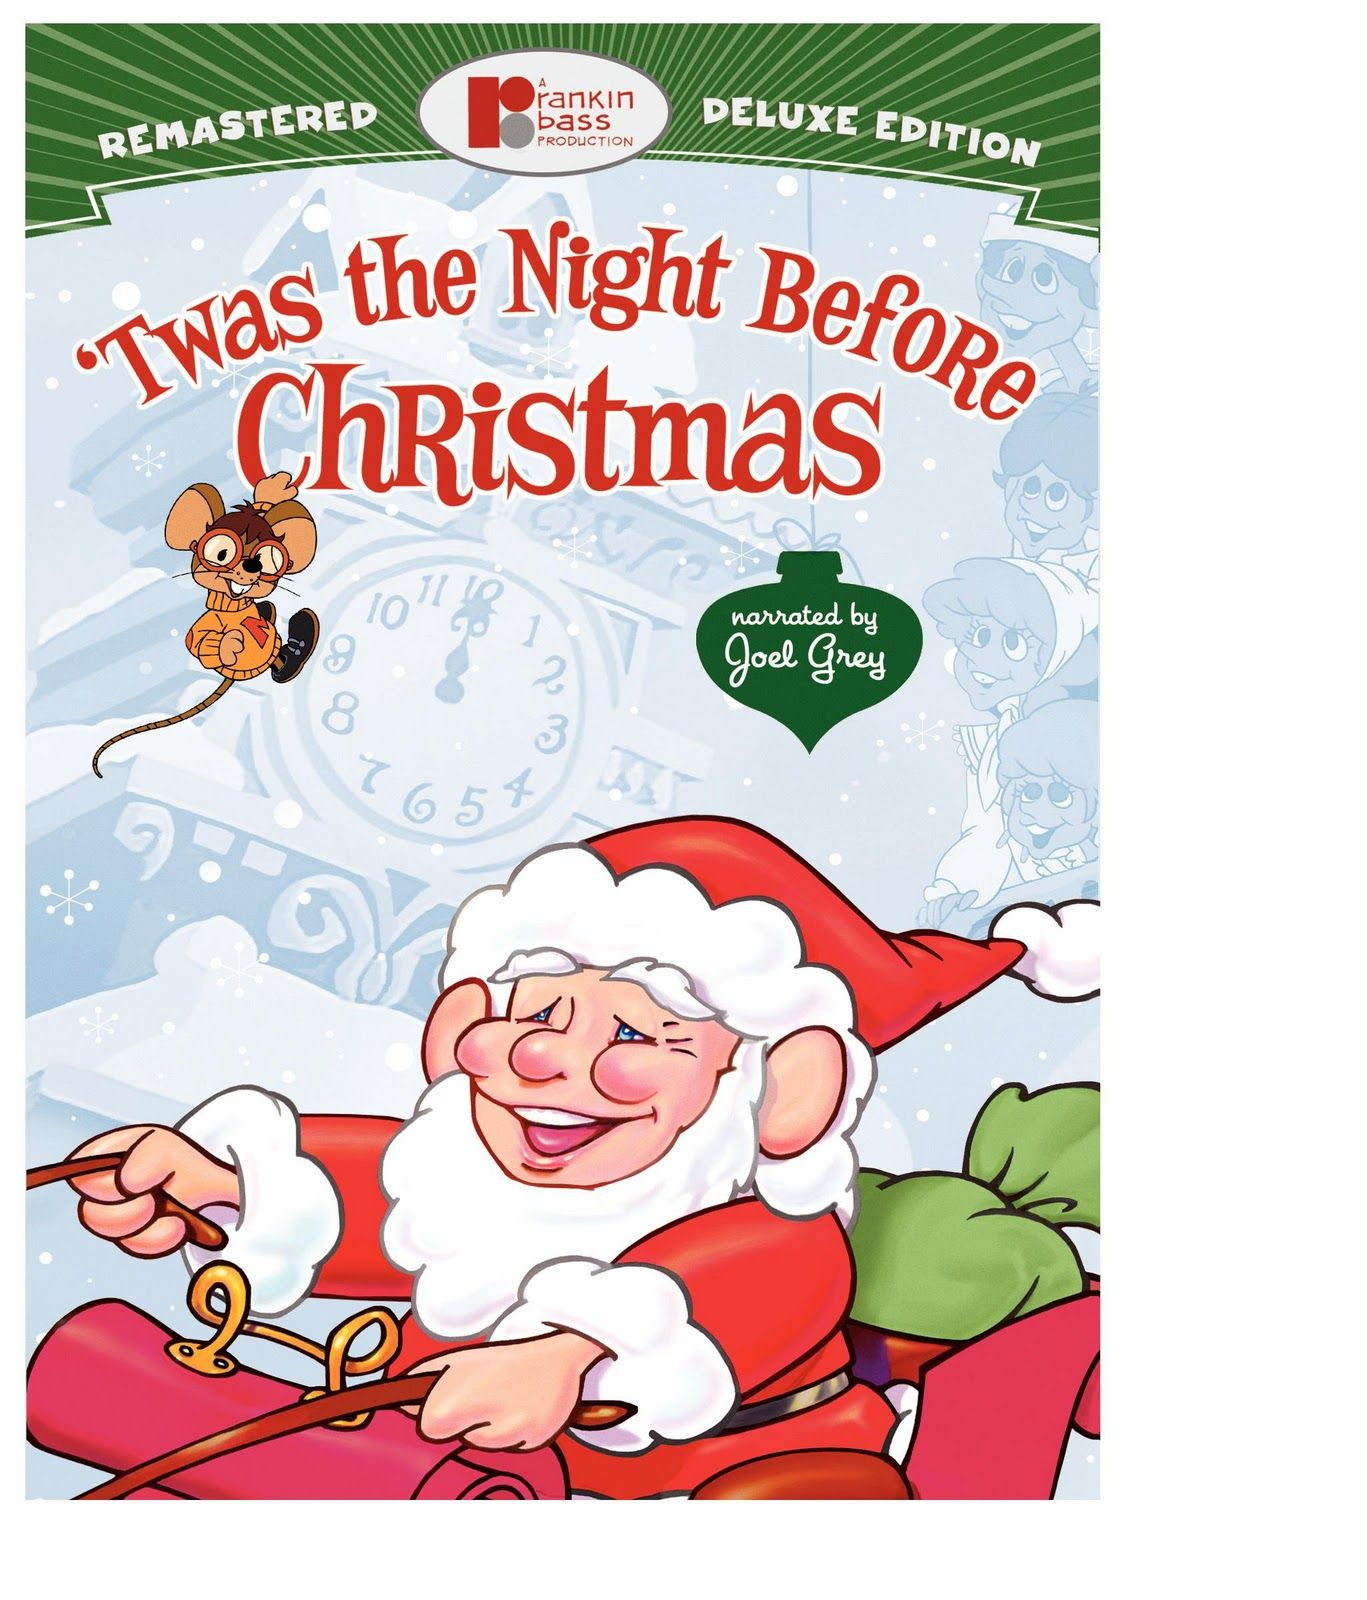 ... The Night Before Christmas | Christmas Movies & Specials | Pinterest